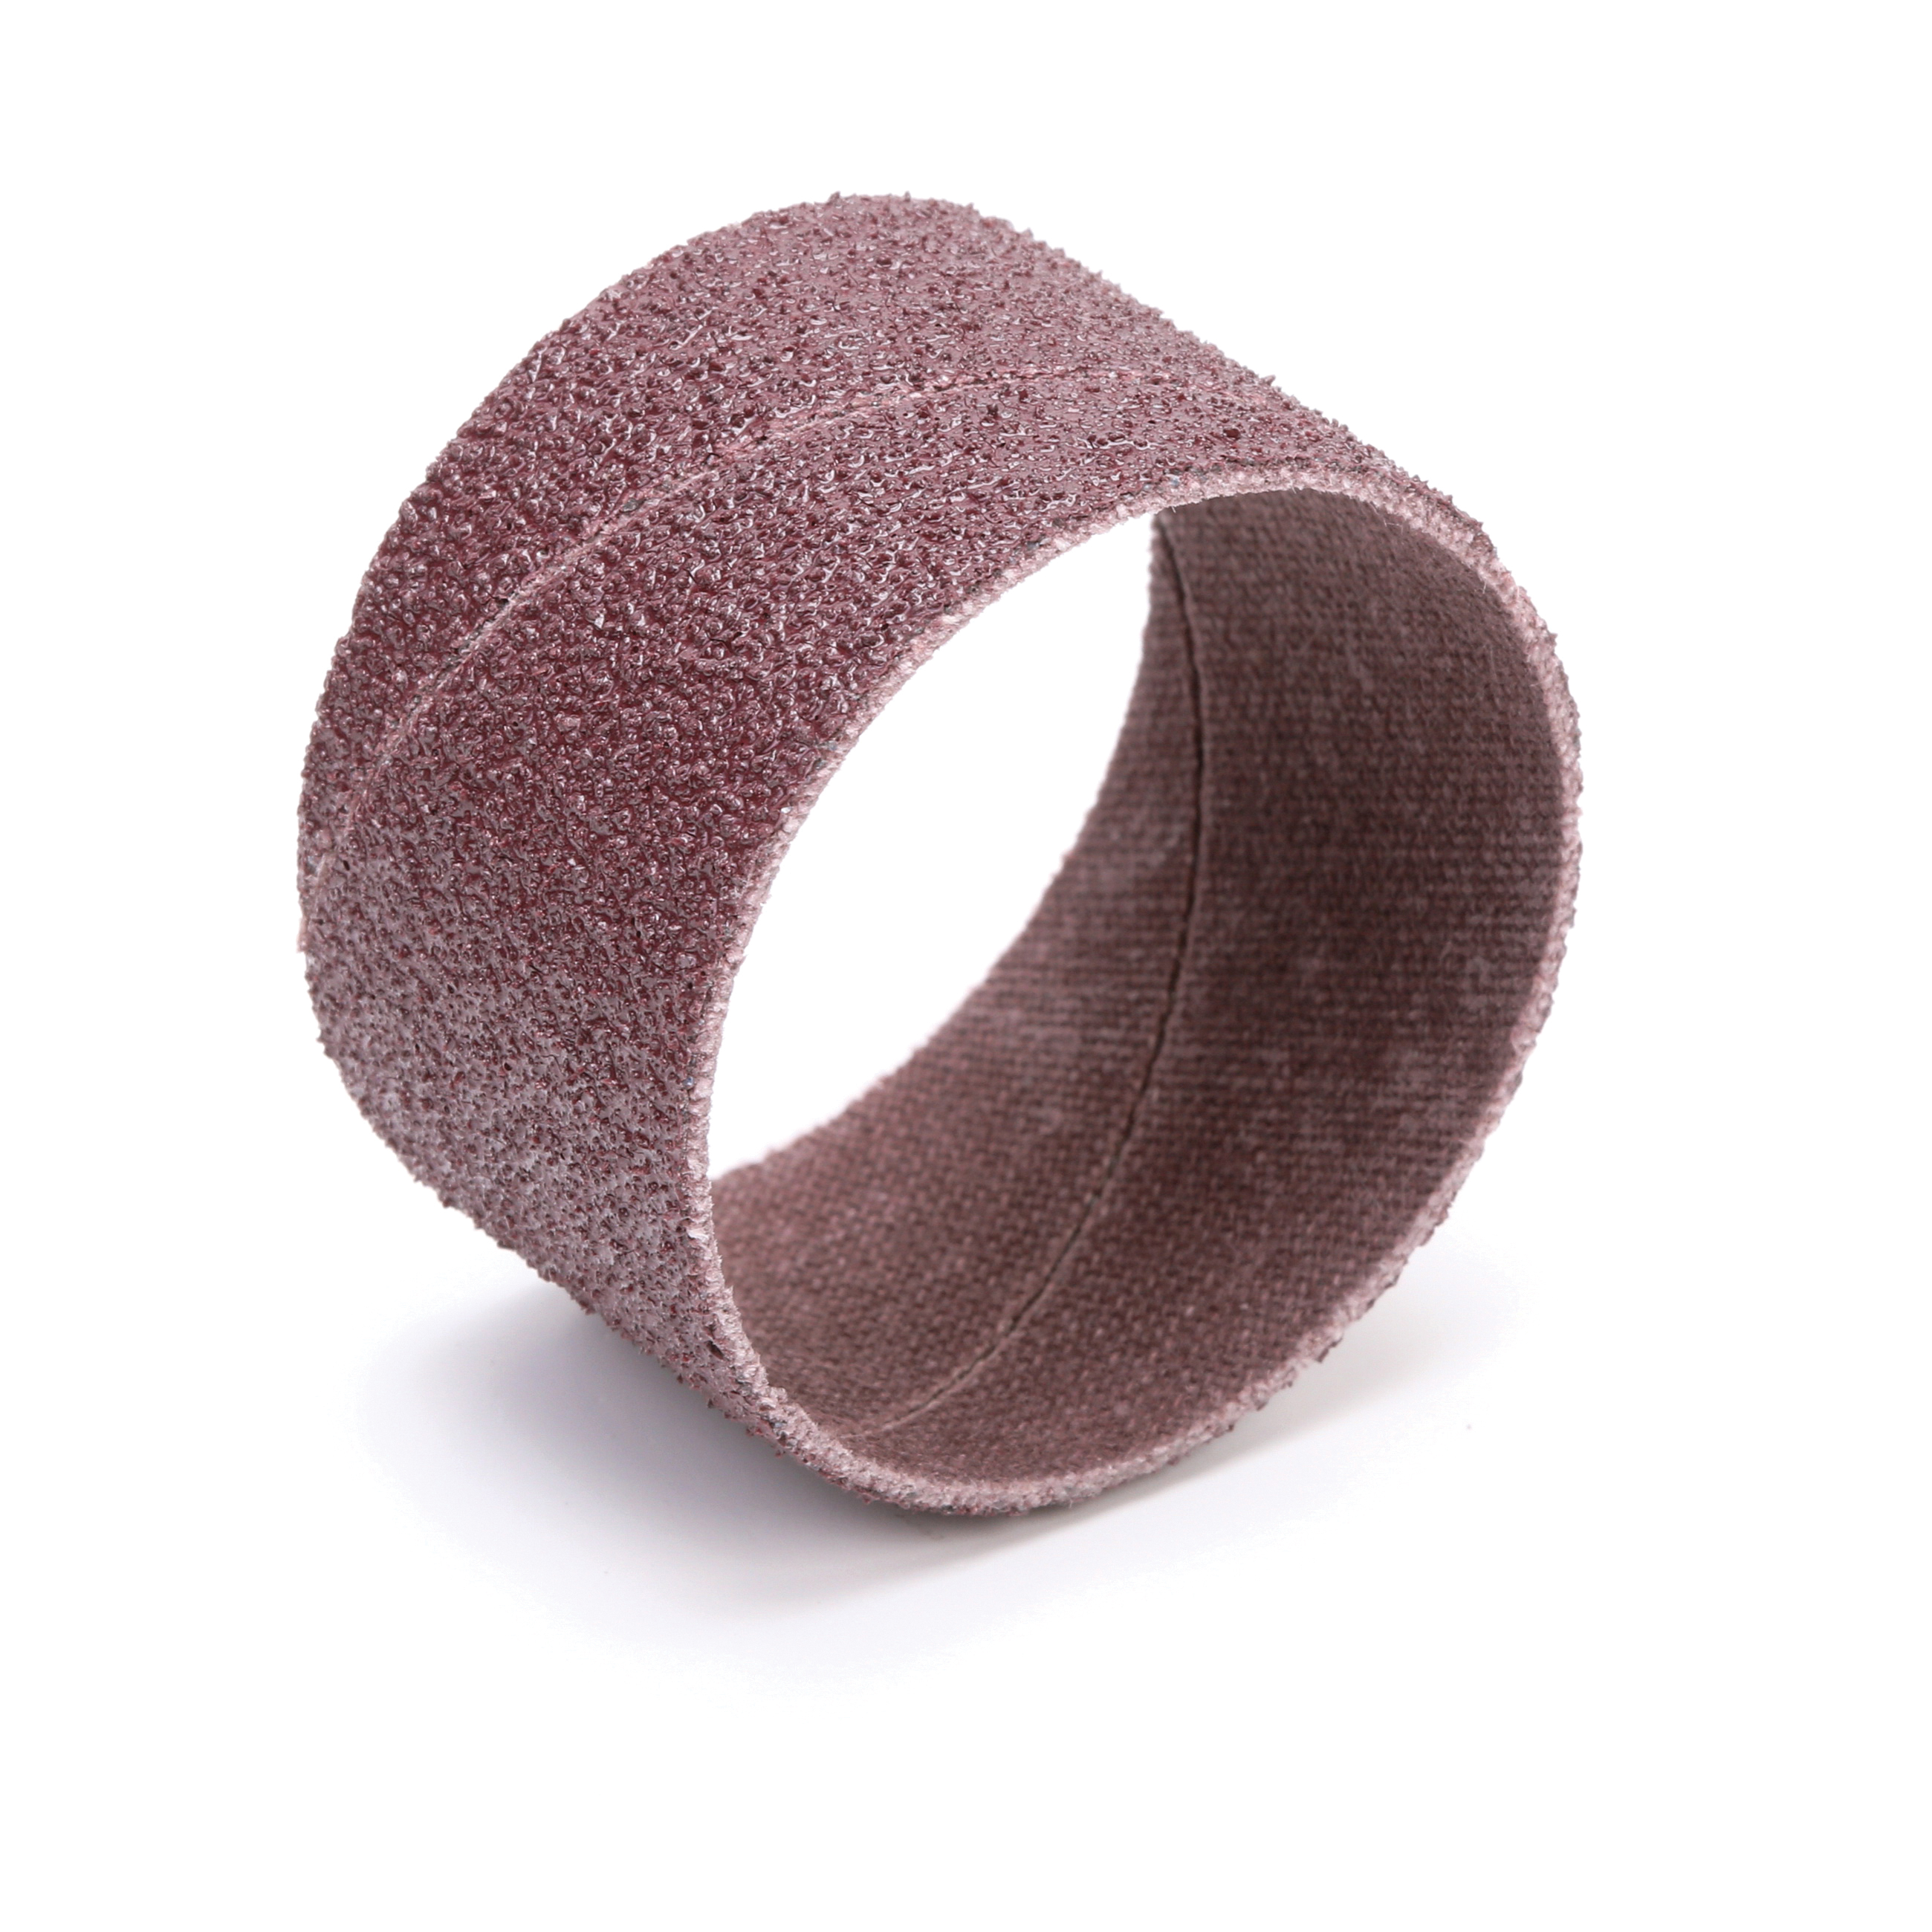 3M™ 051144-40202 Coated Spiral Band, 1-1/2 in Dia x 1 in L, 60 Grit, Medium Grade, Aluminum Oxide Abrasive